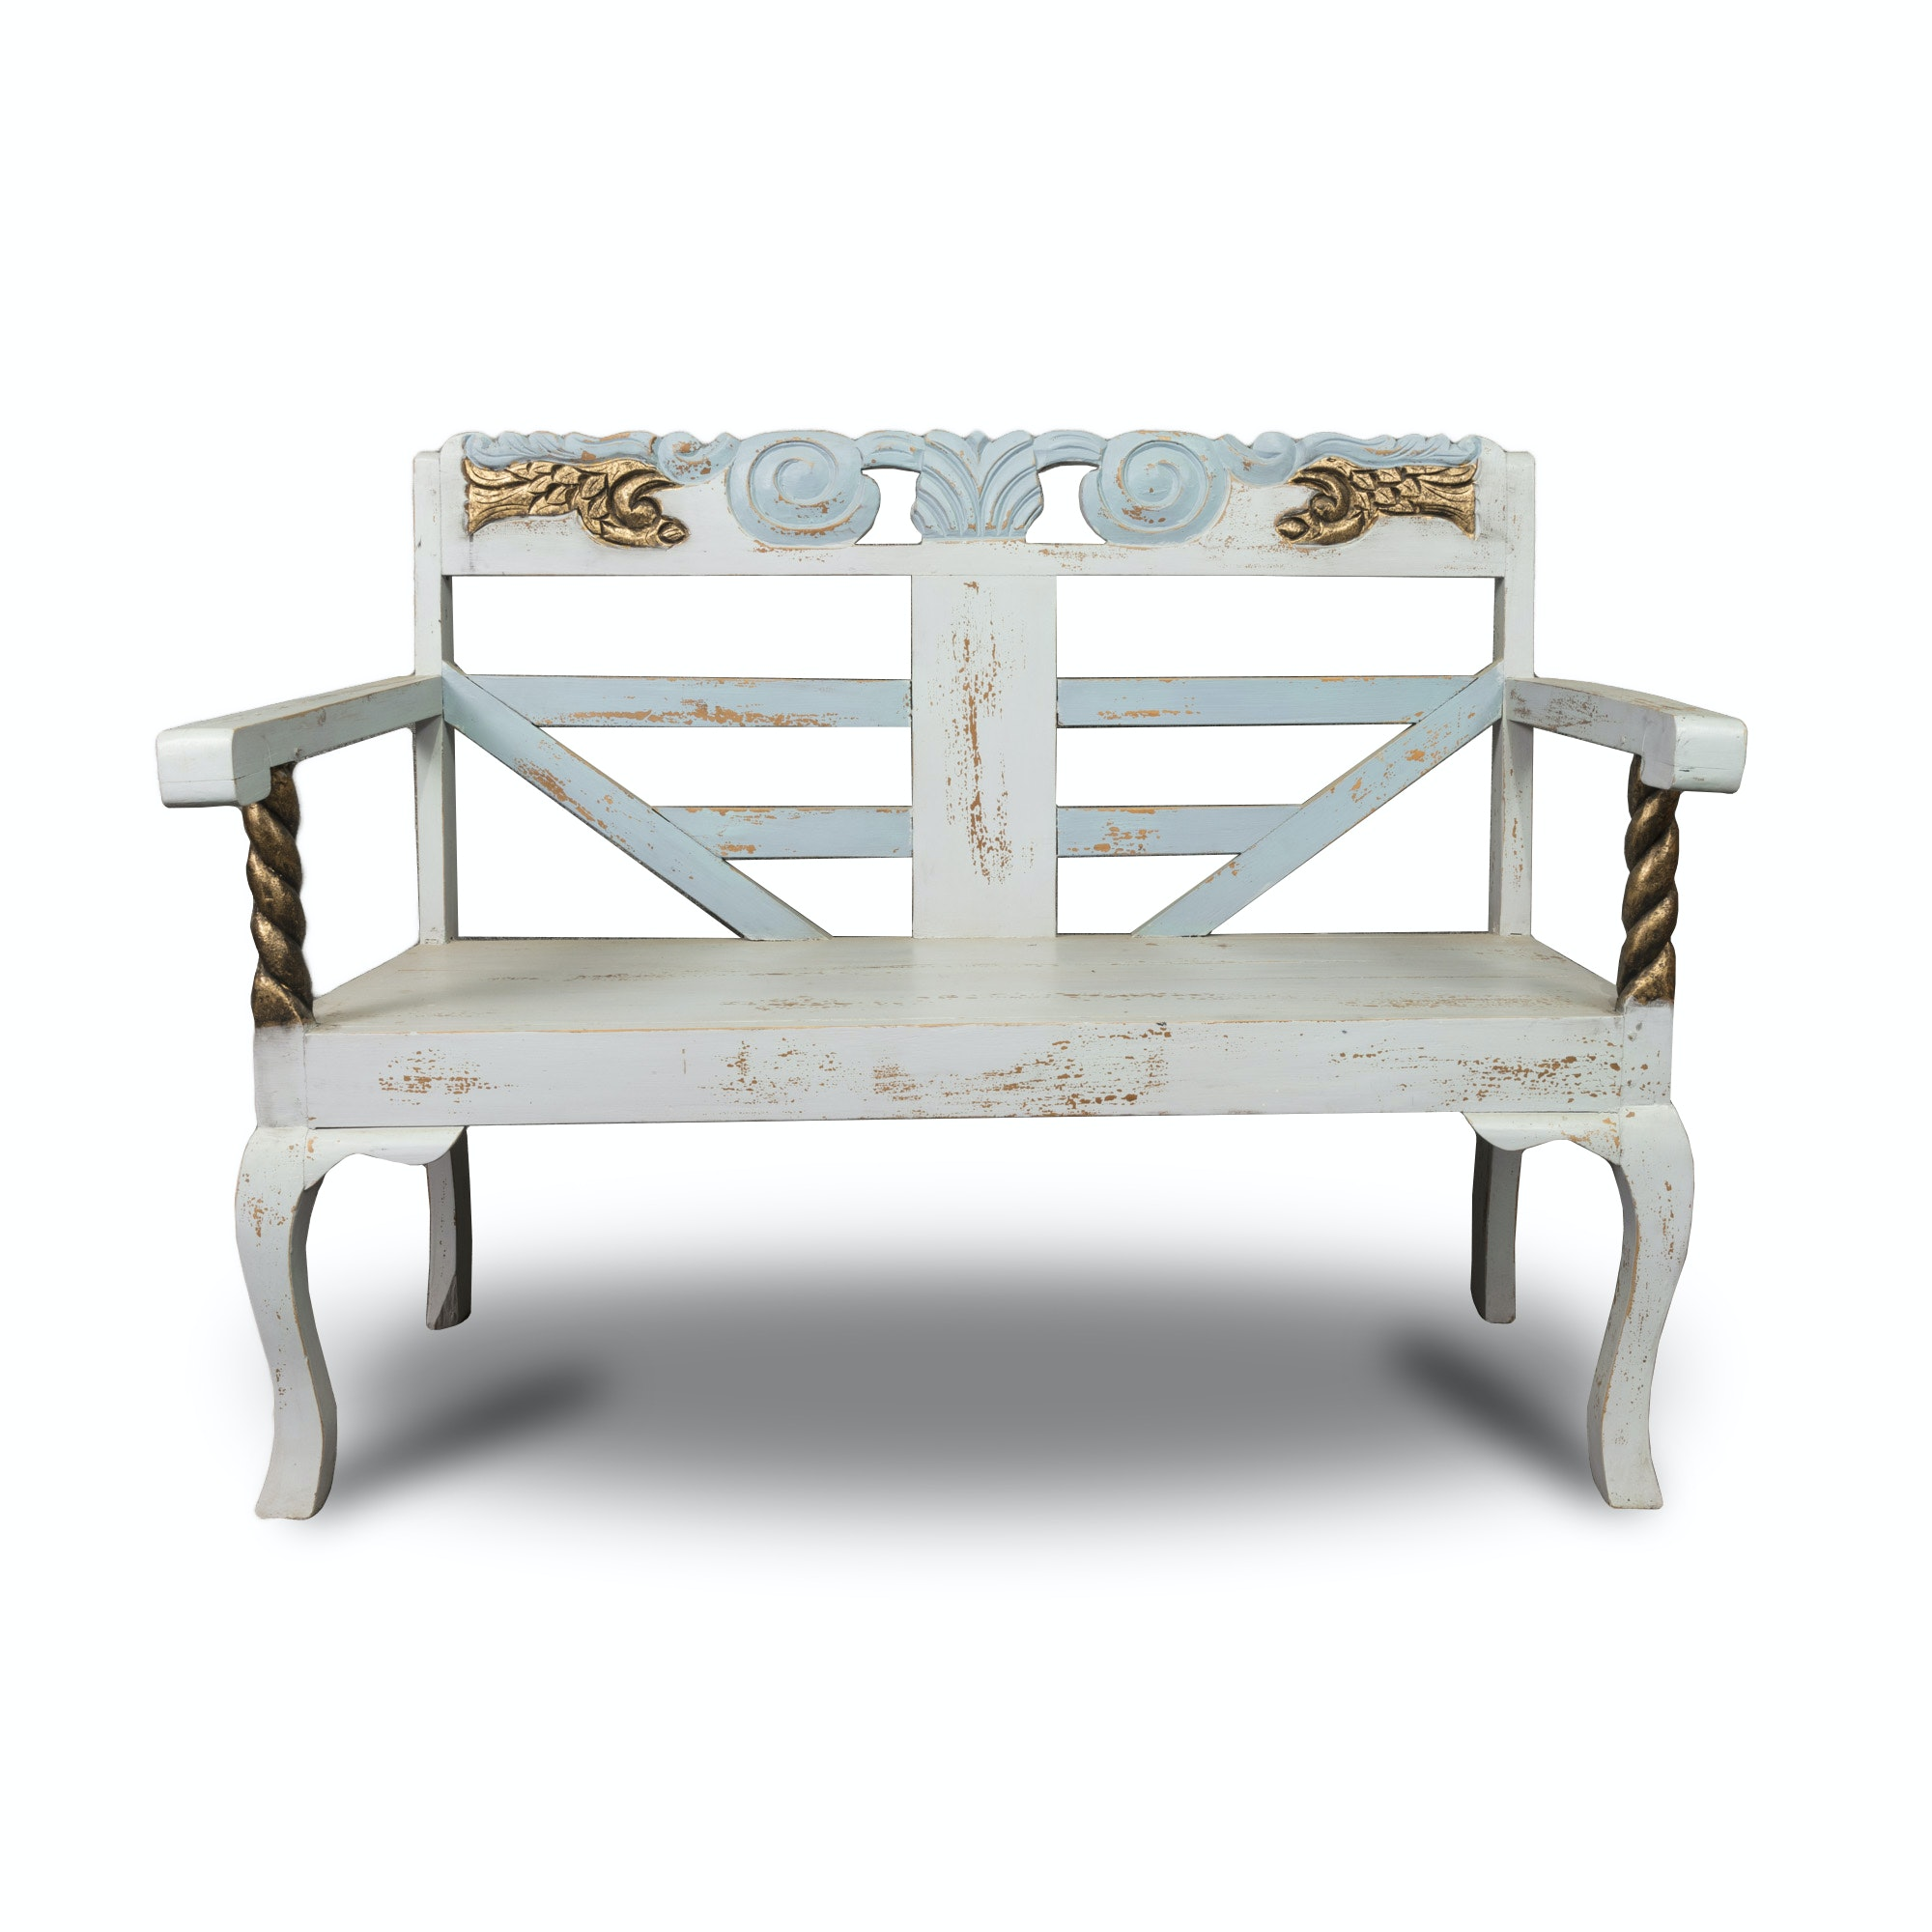 Hand-Painted Distressed White Bench